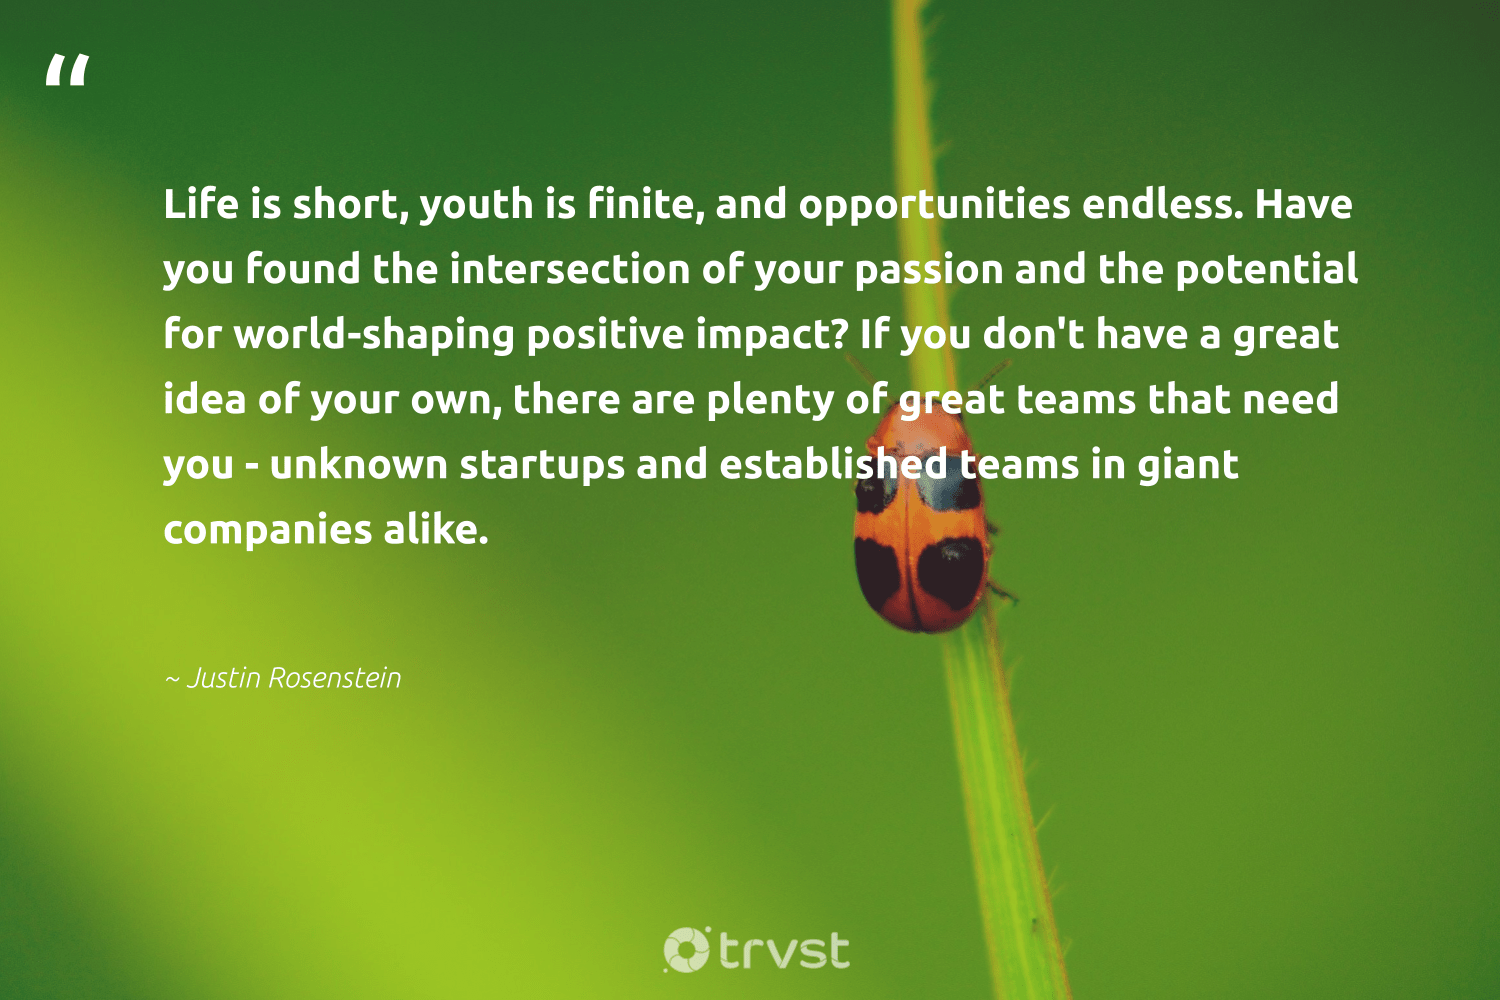 """Life is short, youth is finite, and opportunities endless. Have you found the intersection of your passion and the potential for world-shaping positive impact? If you don't have a great idea of your own, there are plenty of great teams that need you - unknown startups and established teams in giant companies alike.""  - Justin Rosenstein #trvst #quotes #impact #passion #ethicalbusiness #bethechange #weareallone #dosomething #socialchange #dogood #giveback #changetheworld"